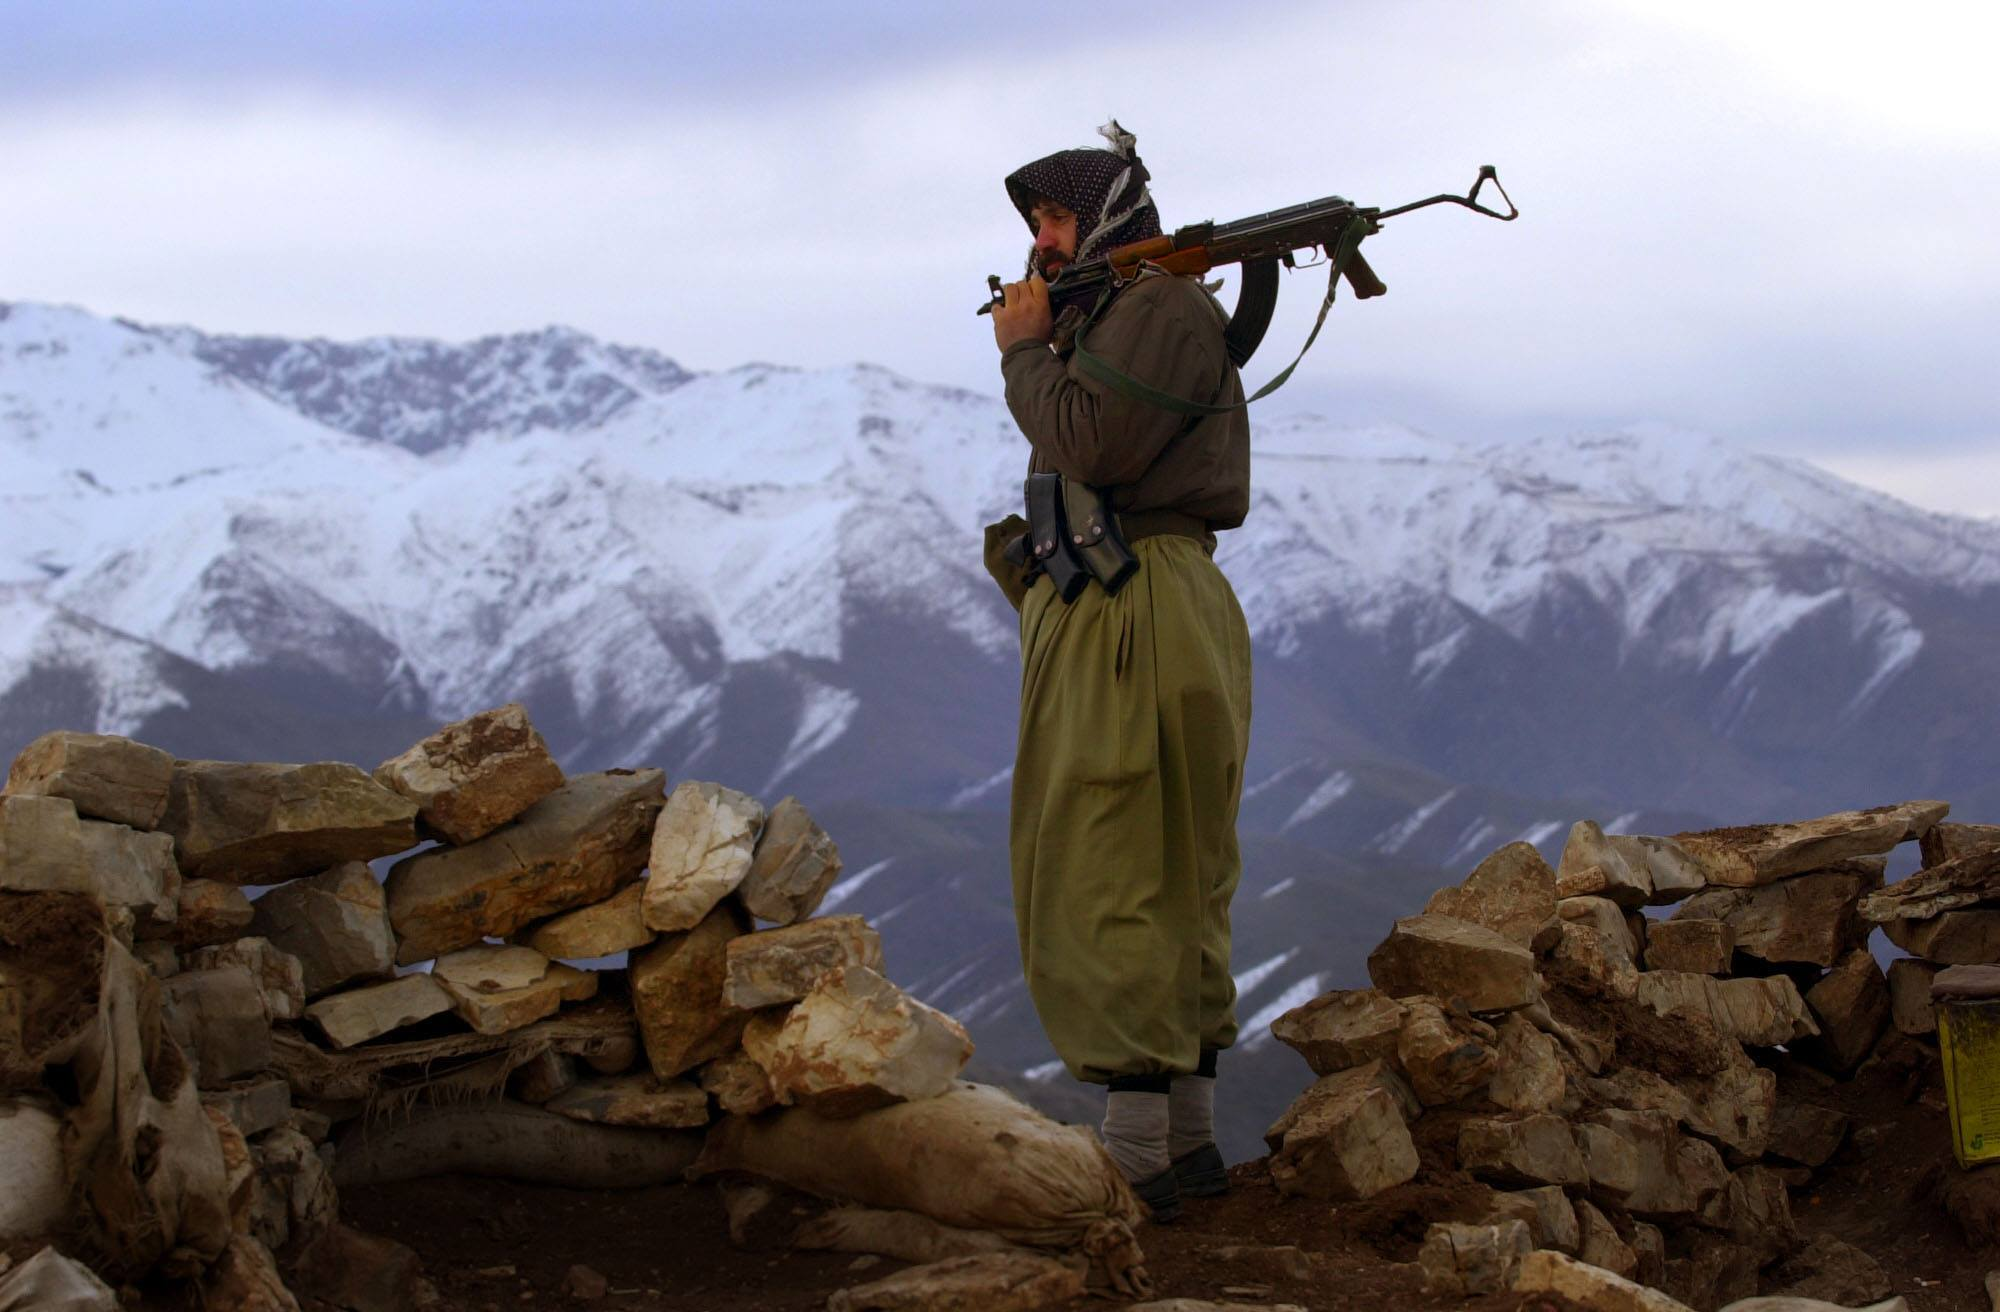 Image A Kurdish fighter in the north of Iraq, December 24, 2008 (James Gordon)